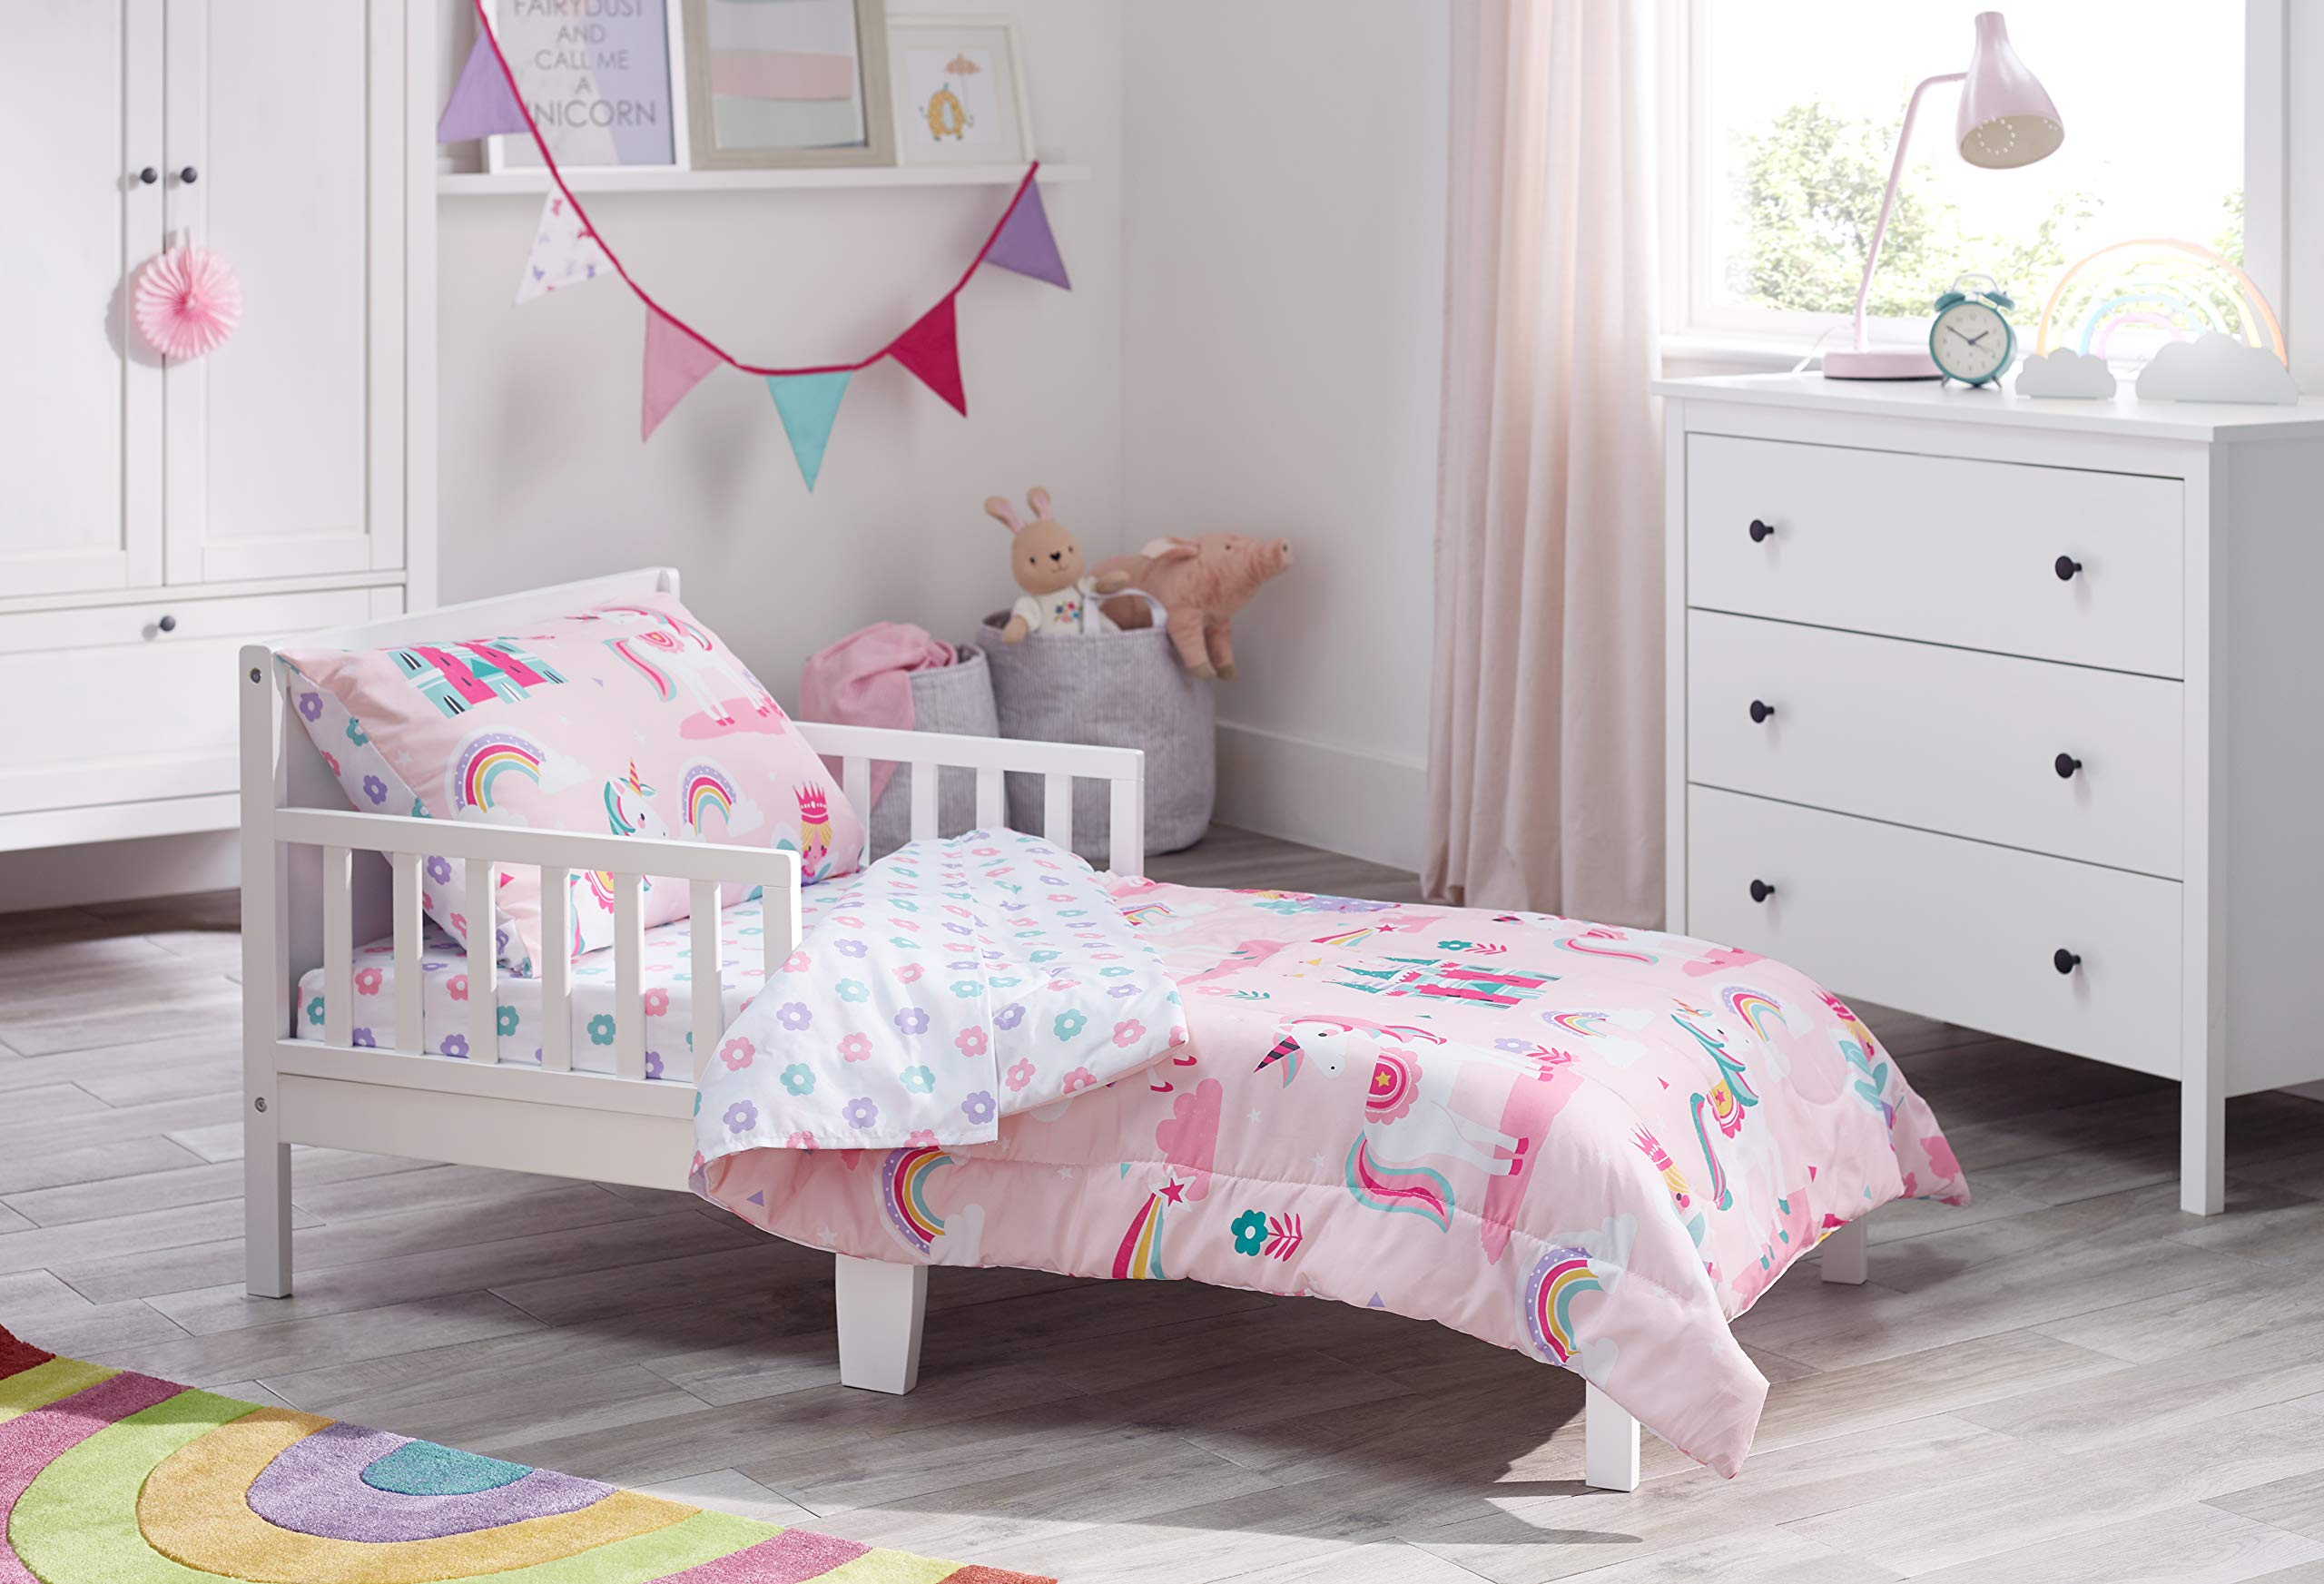 Bloomsbury Mill - 4 Piece Toddler Comforter Set - Magic Unicorn, Fairy Princess & Enchanted Castle - Pink - Kids Bedding Set 3